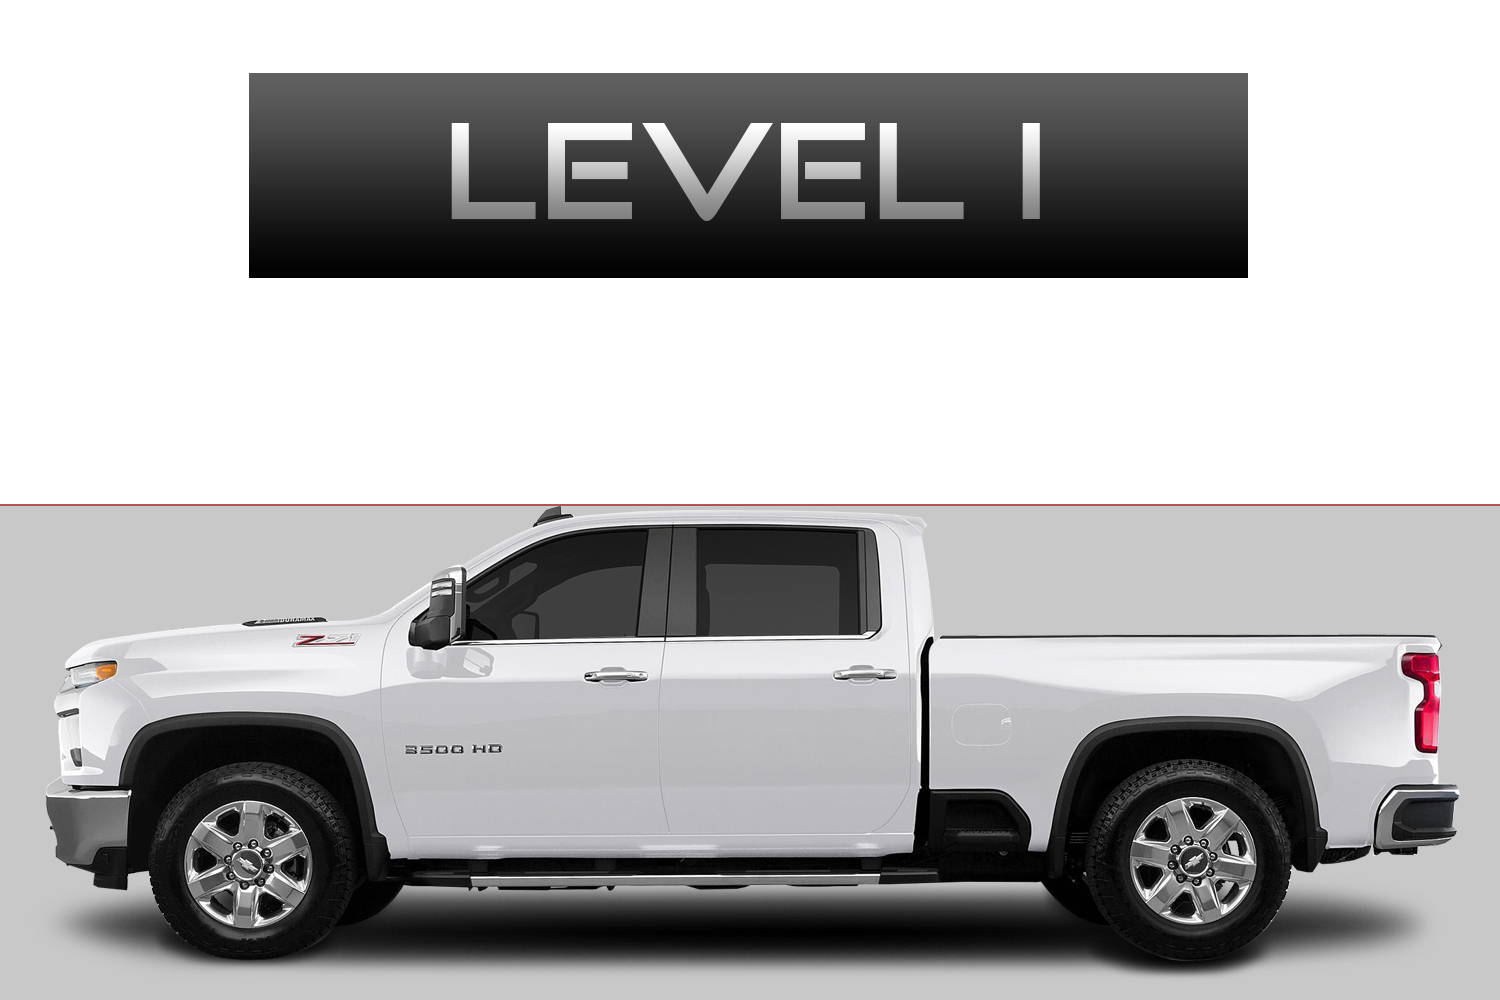 Chevrolet Silverado 2500 Off-Road Customizing Package Level 1 by 3C Trucks